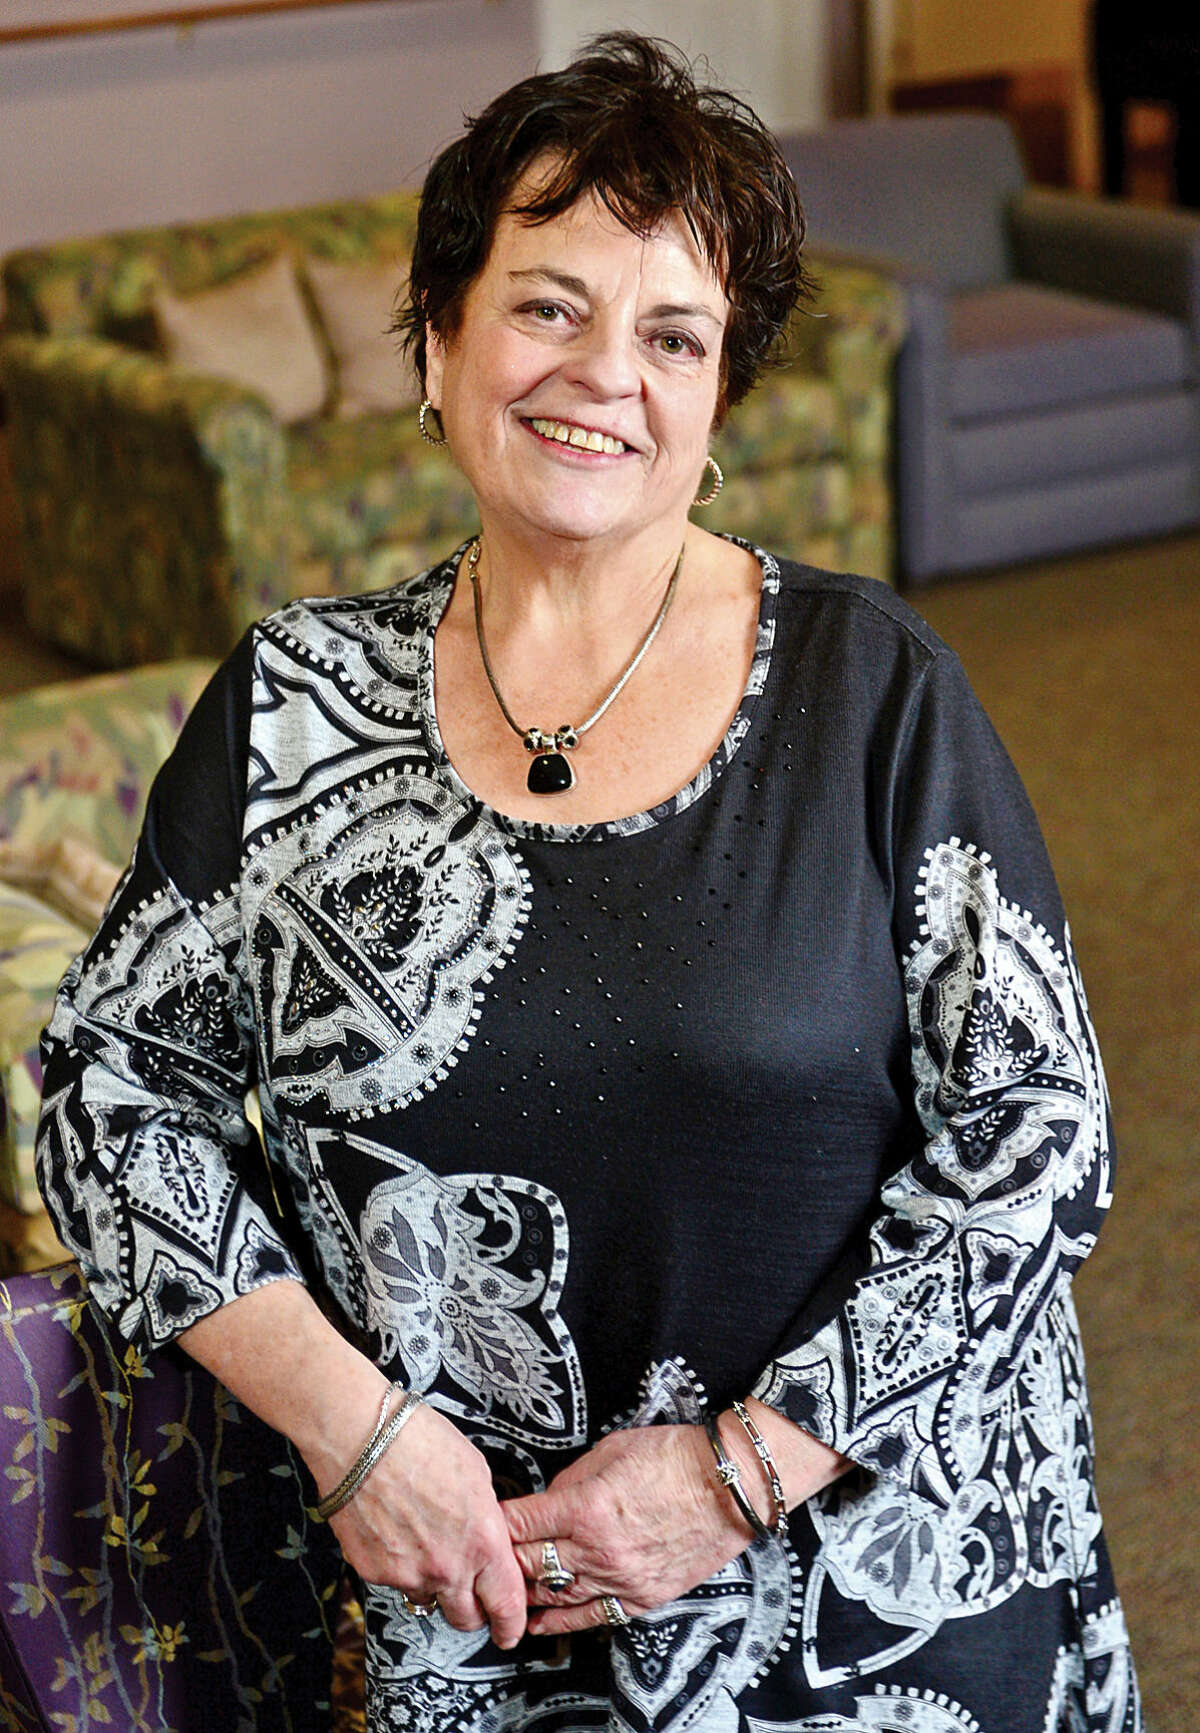 Hour photo / Erik Trautmann Mary Windt celebrates 20 years as the Executive Director of Under One Roof and The Marvin senior housing facility.